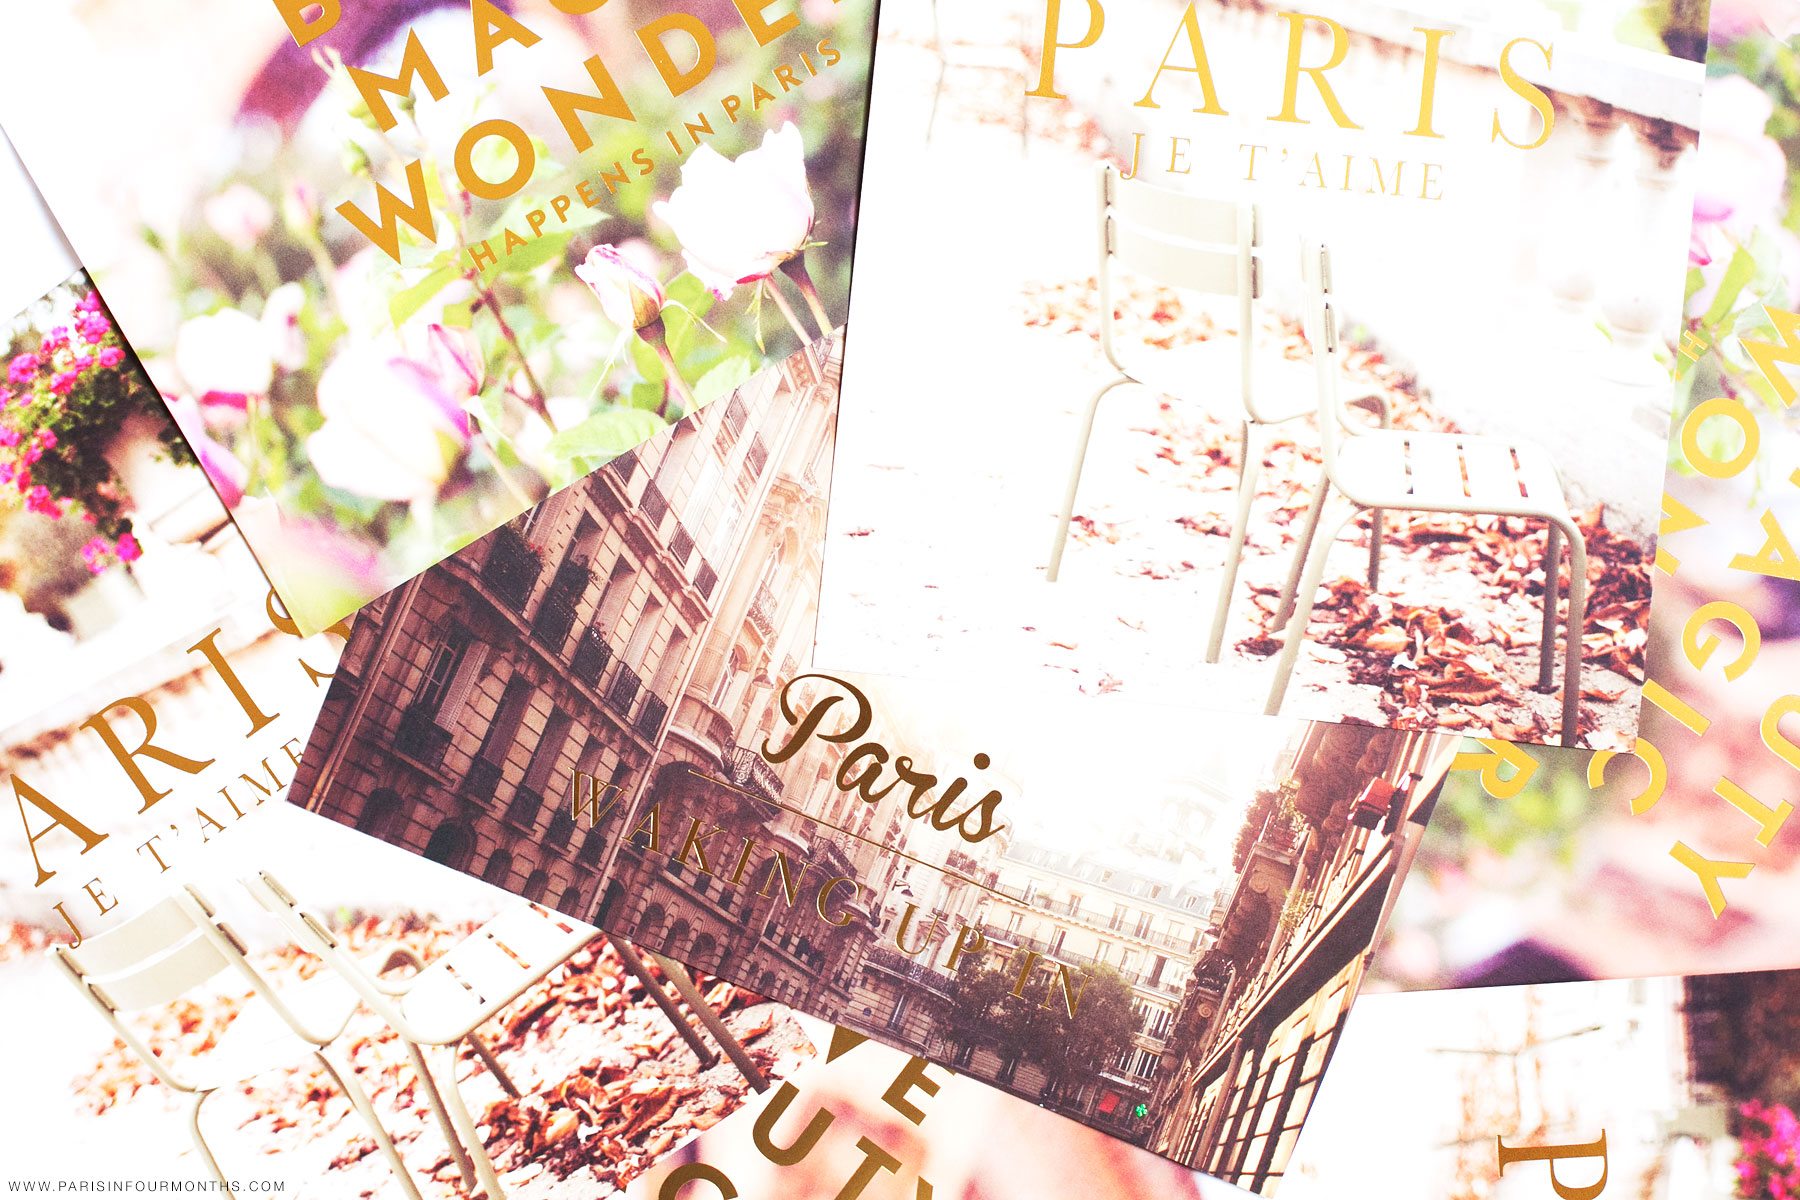 Paris prints by Carin Olsson and SS Print Shop